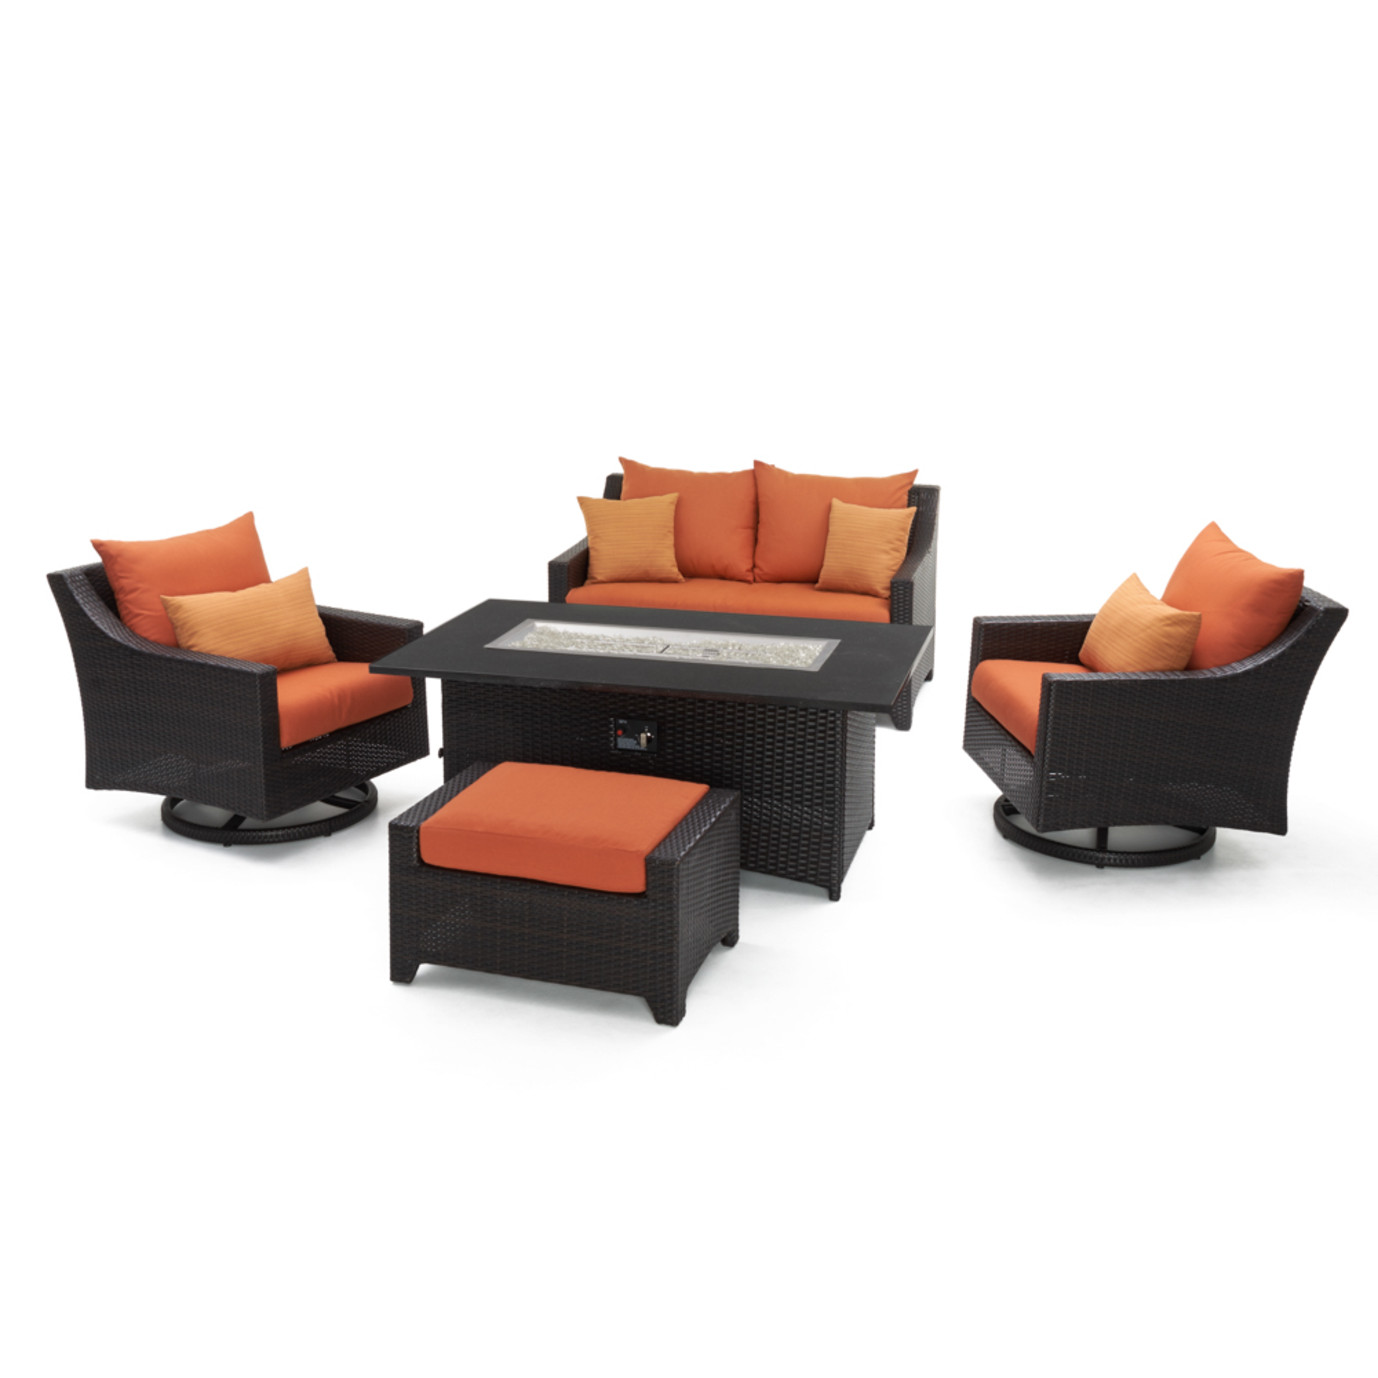 Deco™ 5pc Love & Motion Club Fire Set - Tikka Orange